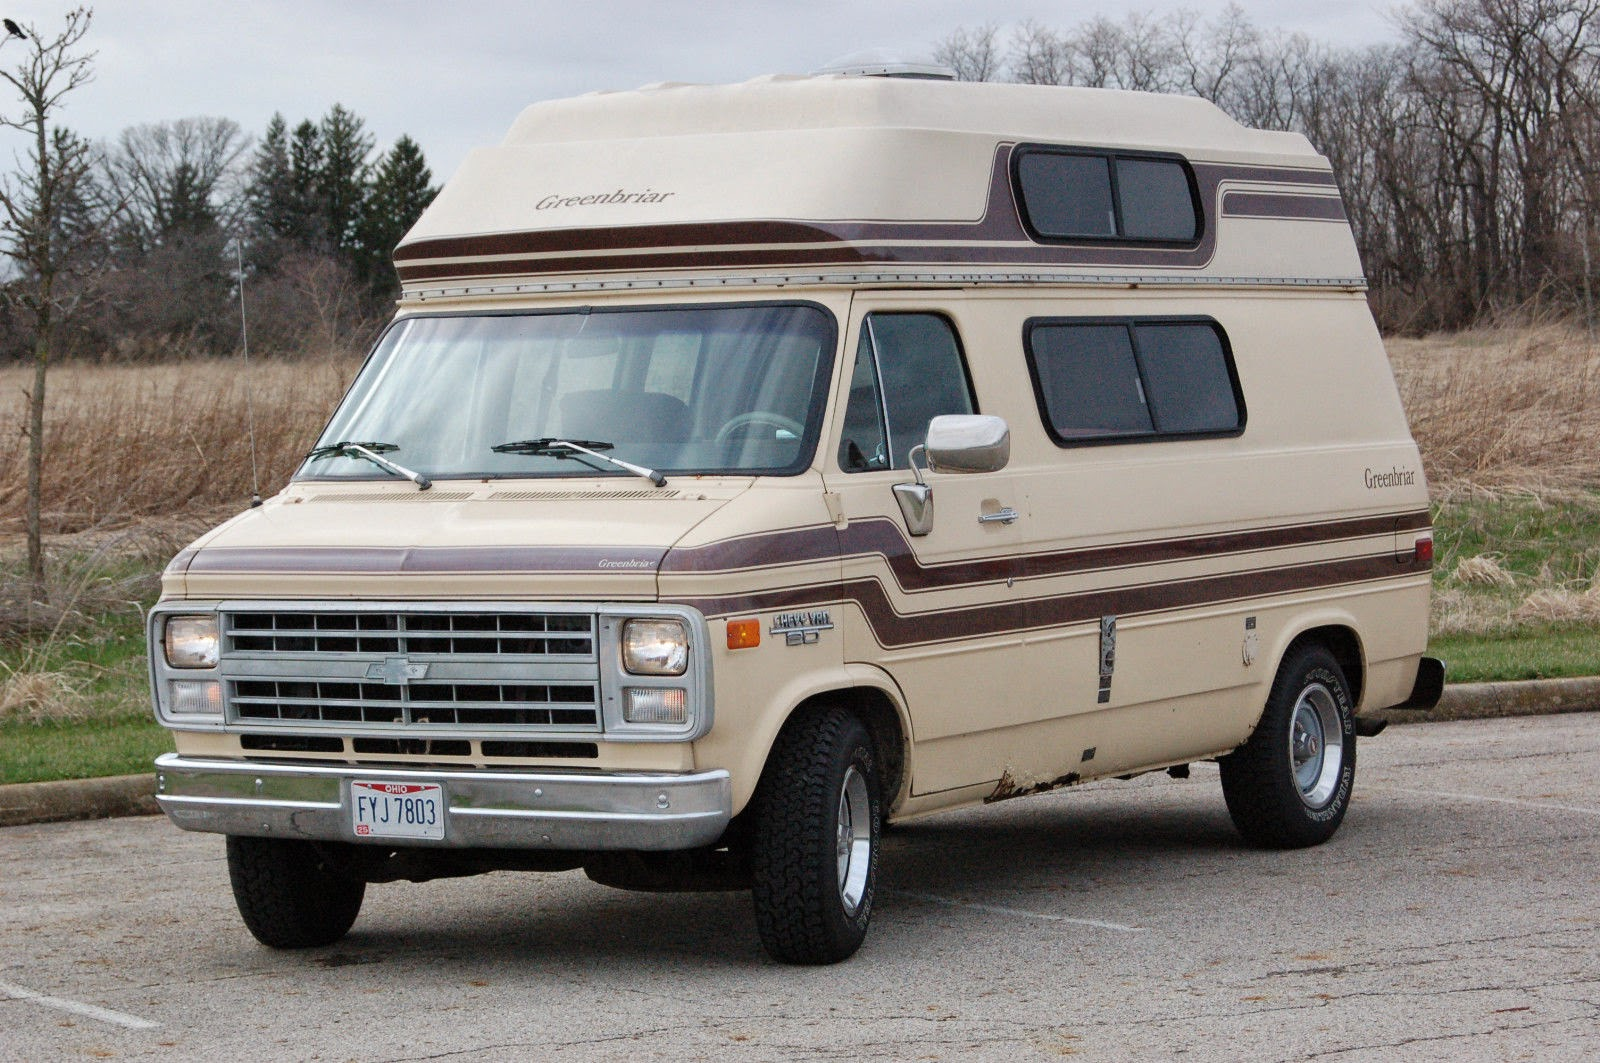 all american classic cars  1985 chevrolet g20 chevy van conversion van